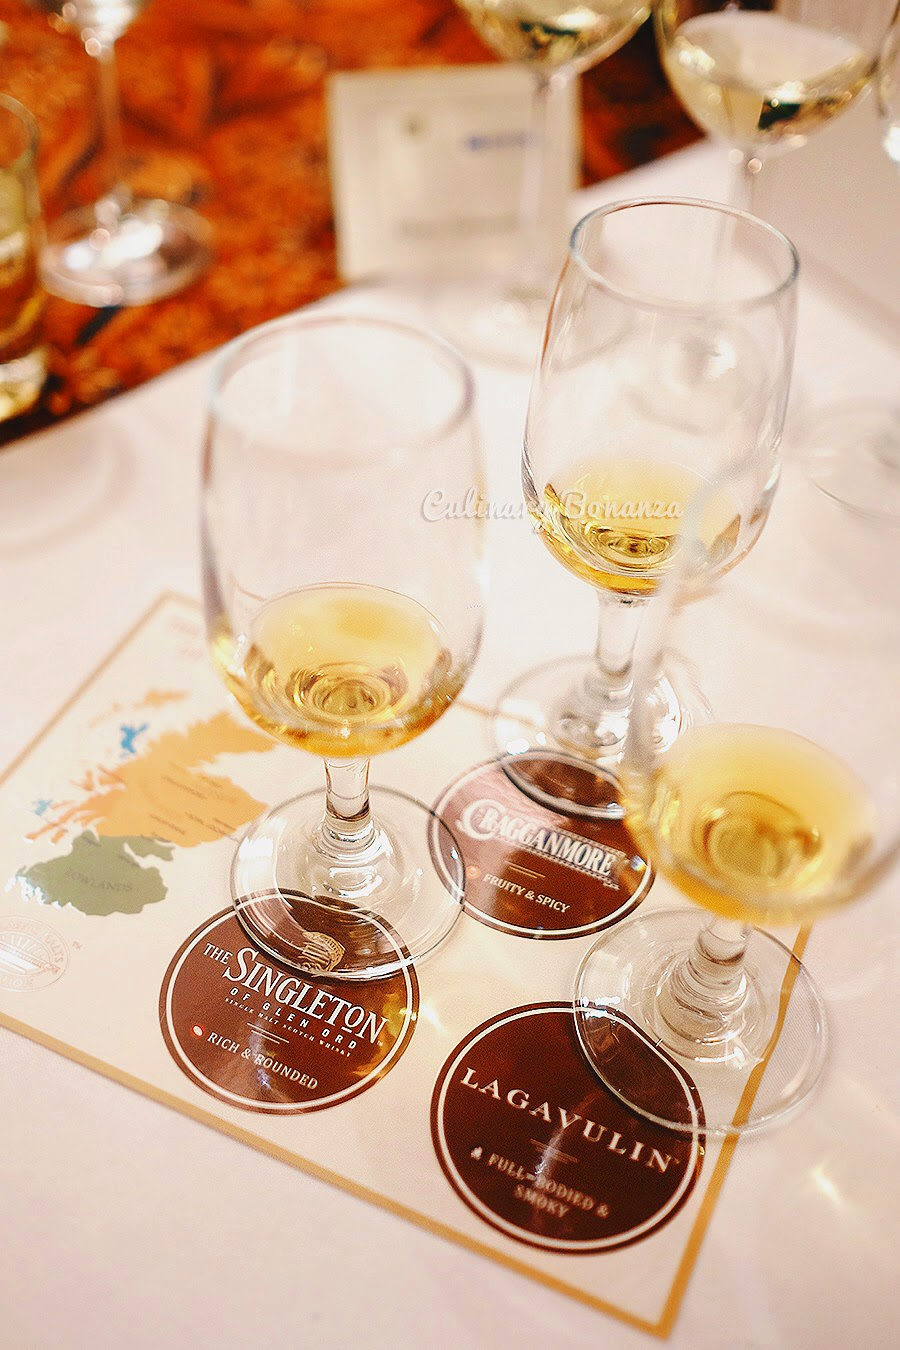 Premium single malt scotch whisky-tasting